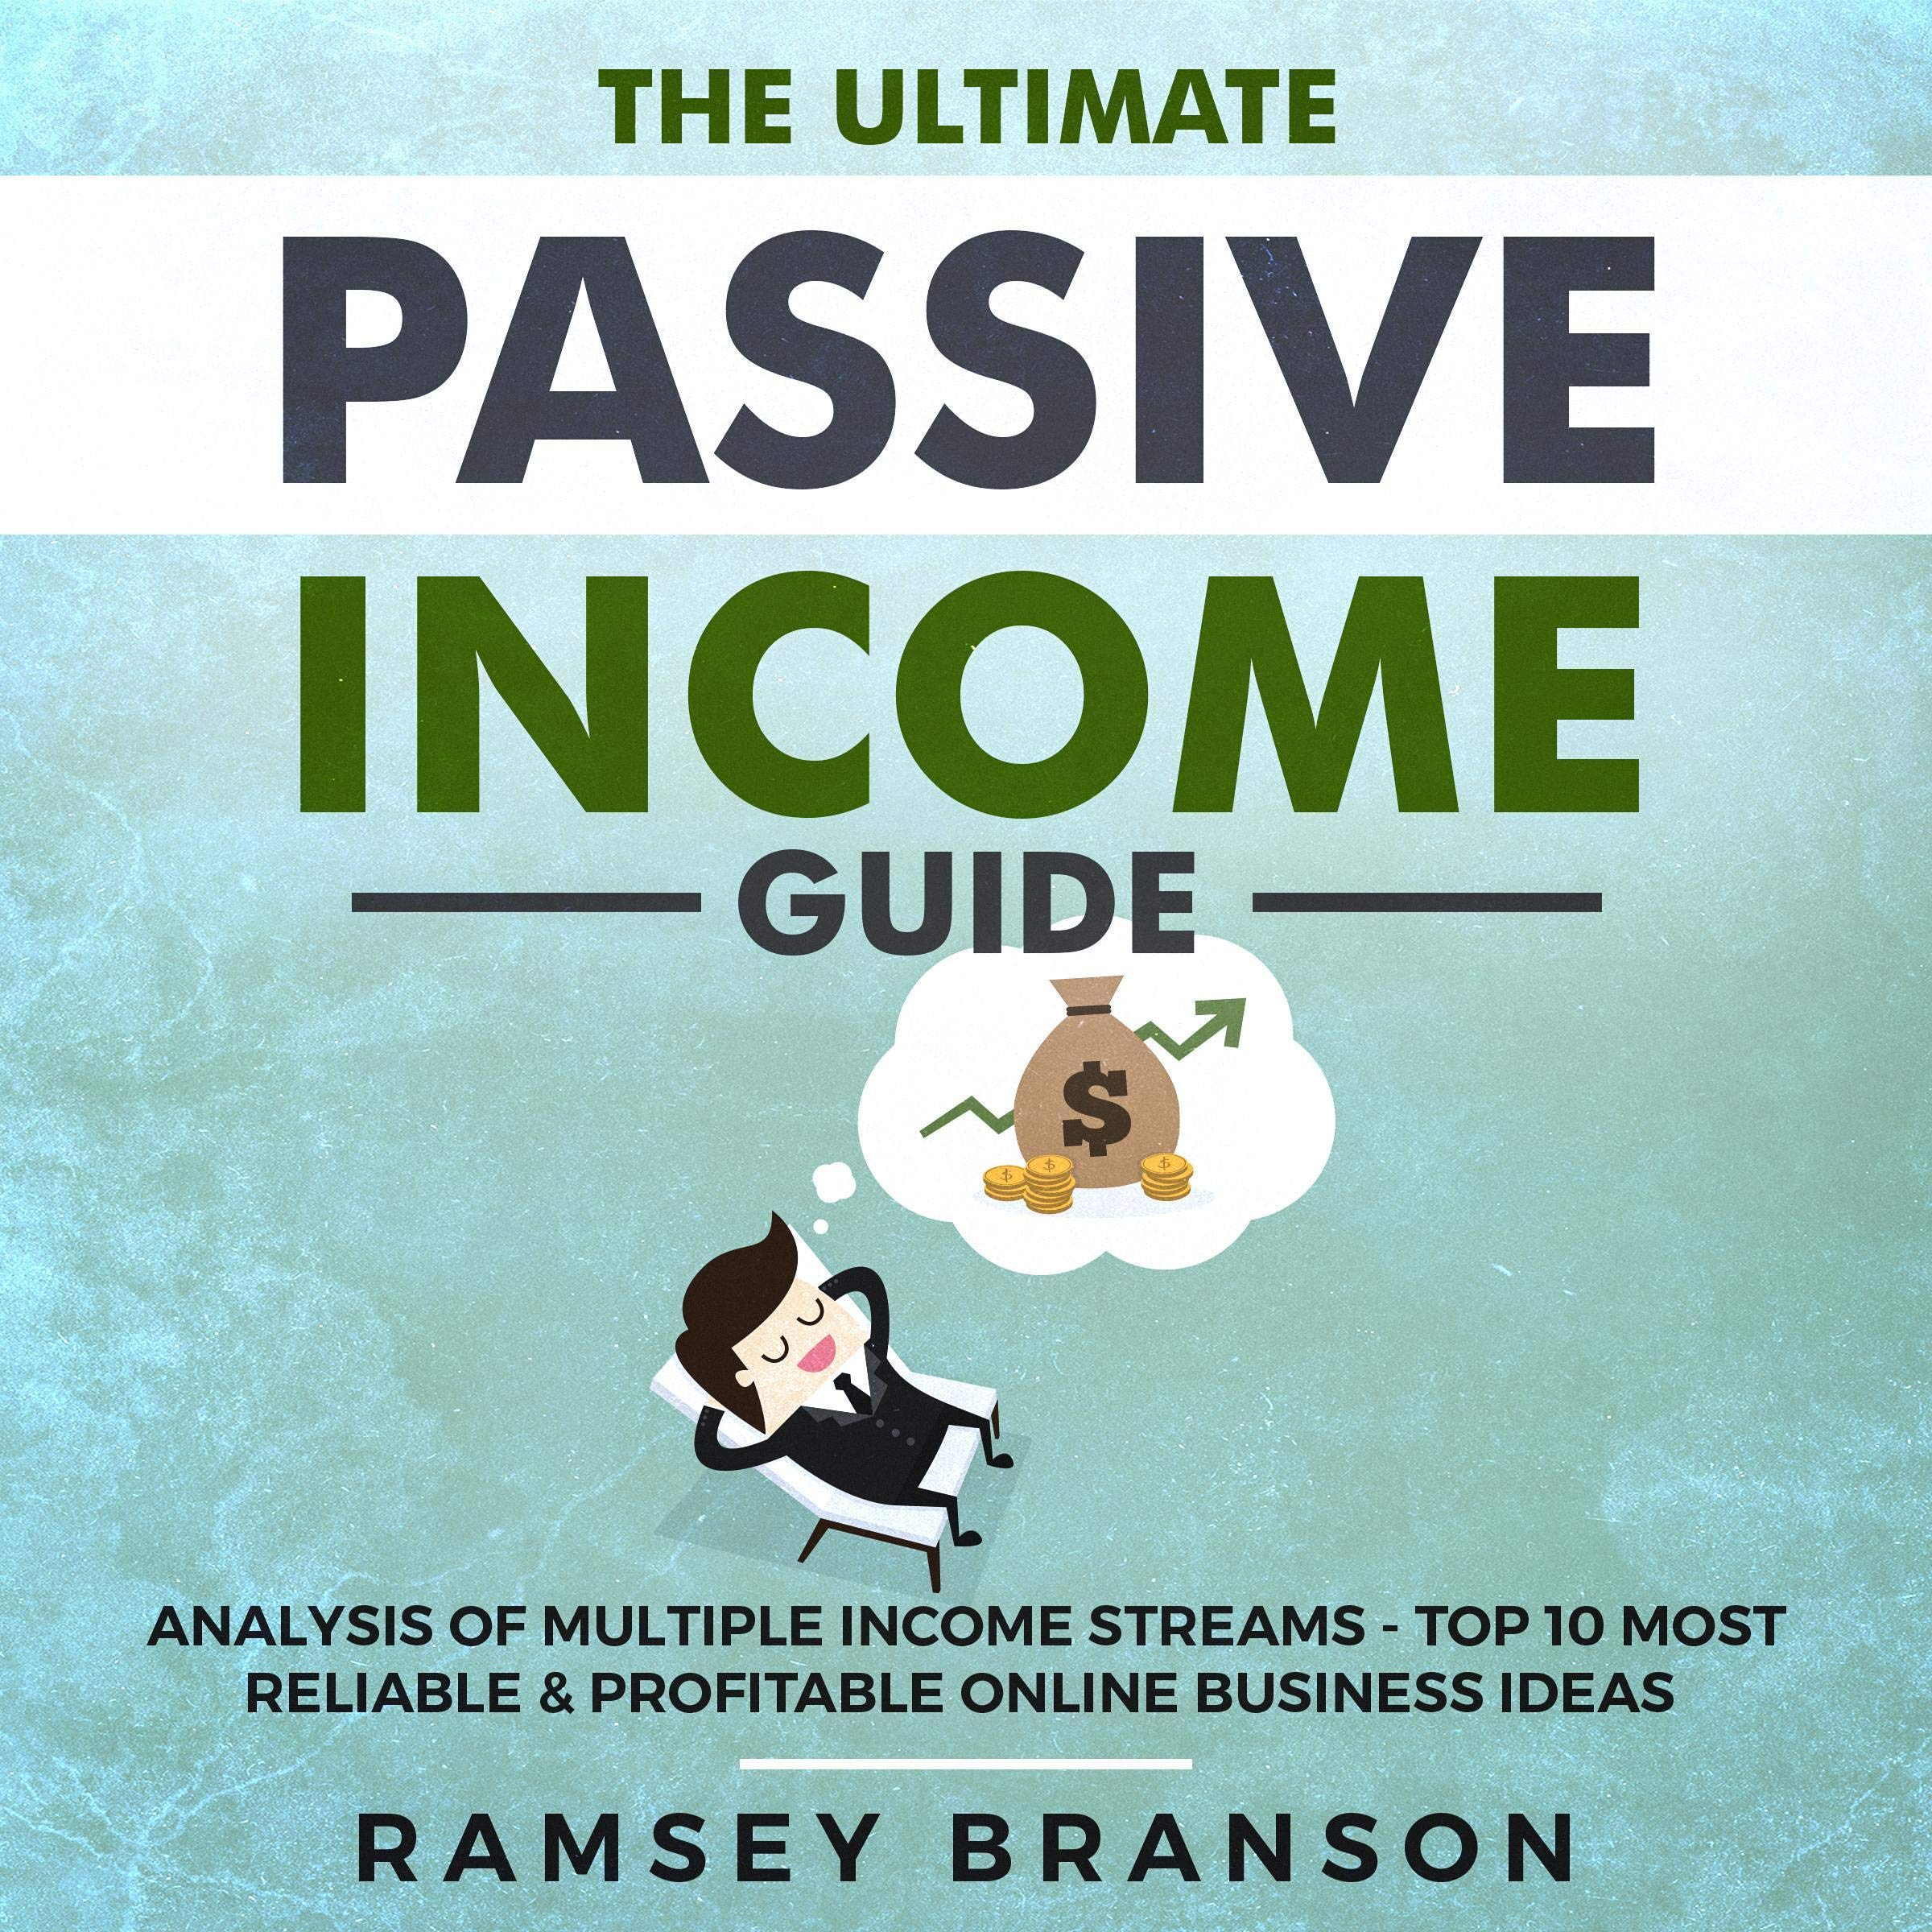 The Ultimate Passive Income Guide  Analysis Of Multiple Income Streams  Top 10 Most Reliable And Profitable Online Business Ideas Including Shopify FBA Affiliate Marketing Dropshipping